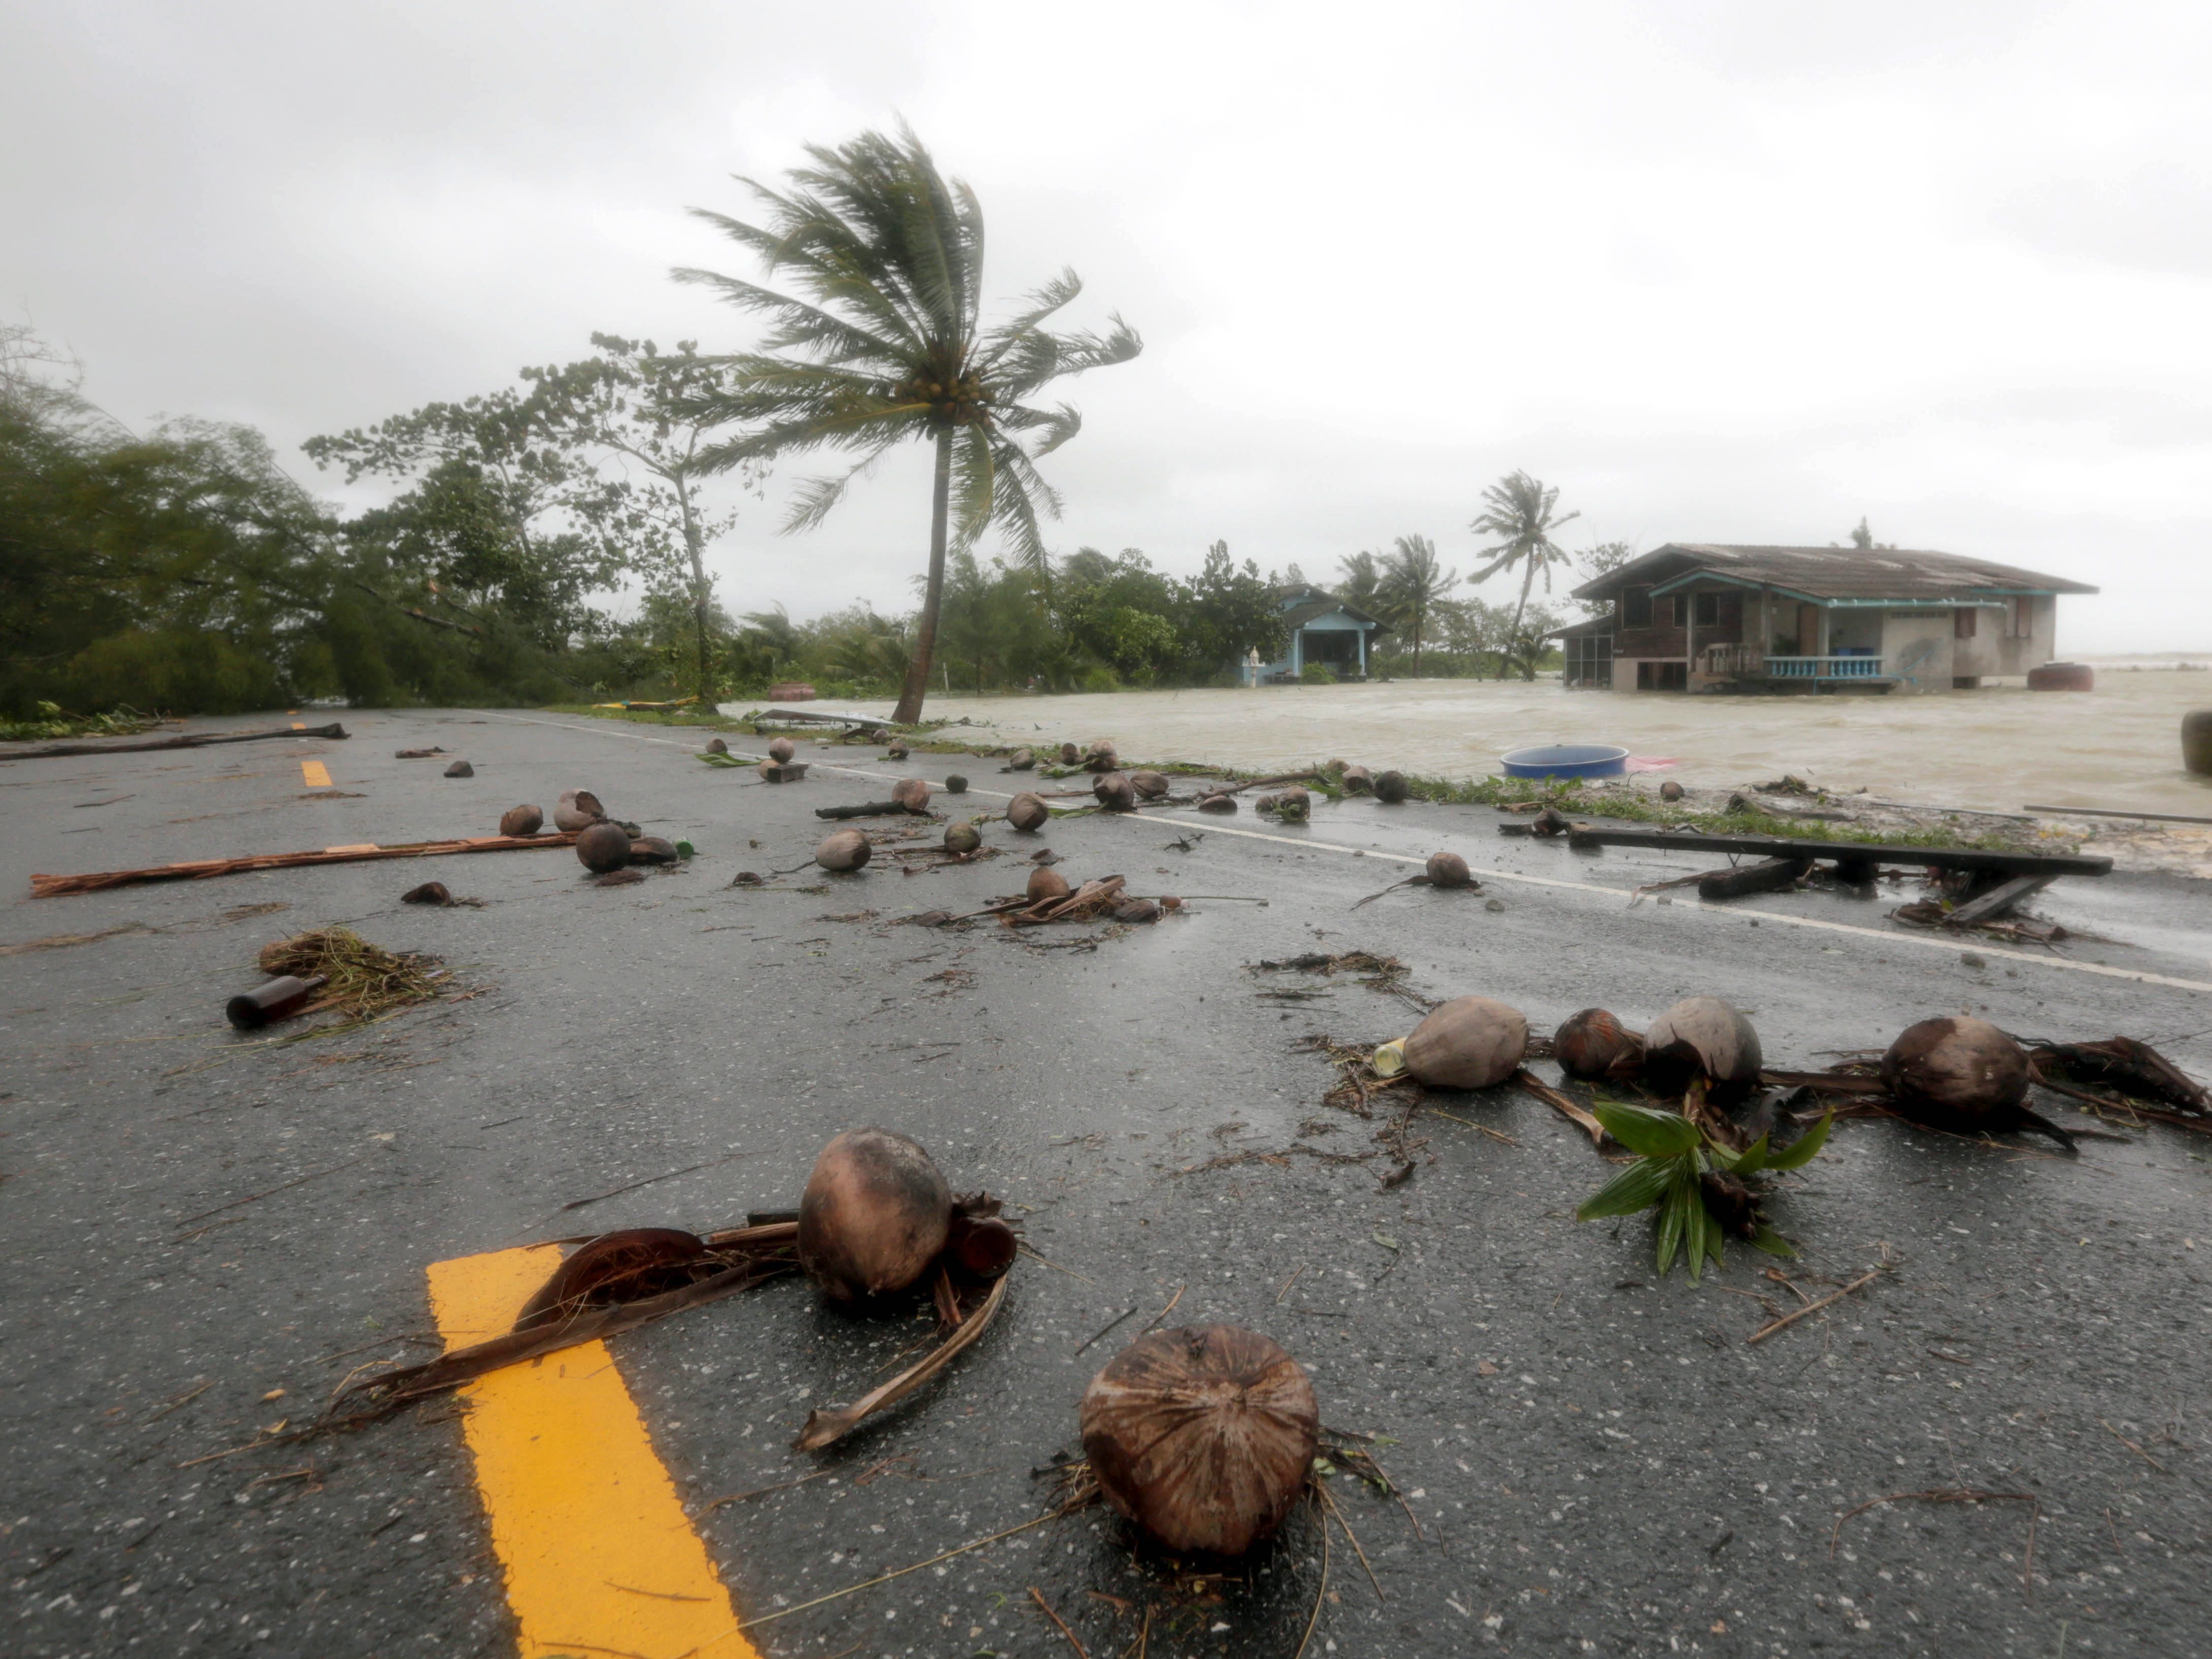 epa07261520 A view of debris on a road and a house (back) partially submerged in floodwaters caused by tropical storm Pabuk at a village in Pak Phanang district, Nakhon Si Thammarat province, southern Thailand, 04 January 2019. Thousands of people evacuated from their homes after 11 southern coast provinces have been put on a weather warning as tropical storm Pabuk brought heavy downpours, strong winds and high waves. Pabuk is the first tropical storm to hit the country outside of the monsoon season in nearly 30 years, media reported.  EPA-EFE/STRINGER THAILAND OUT ORG XMIT: RUN05